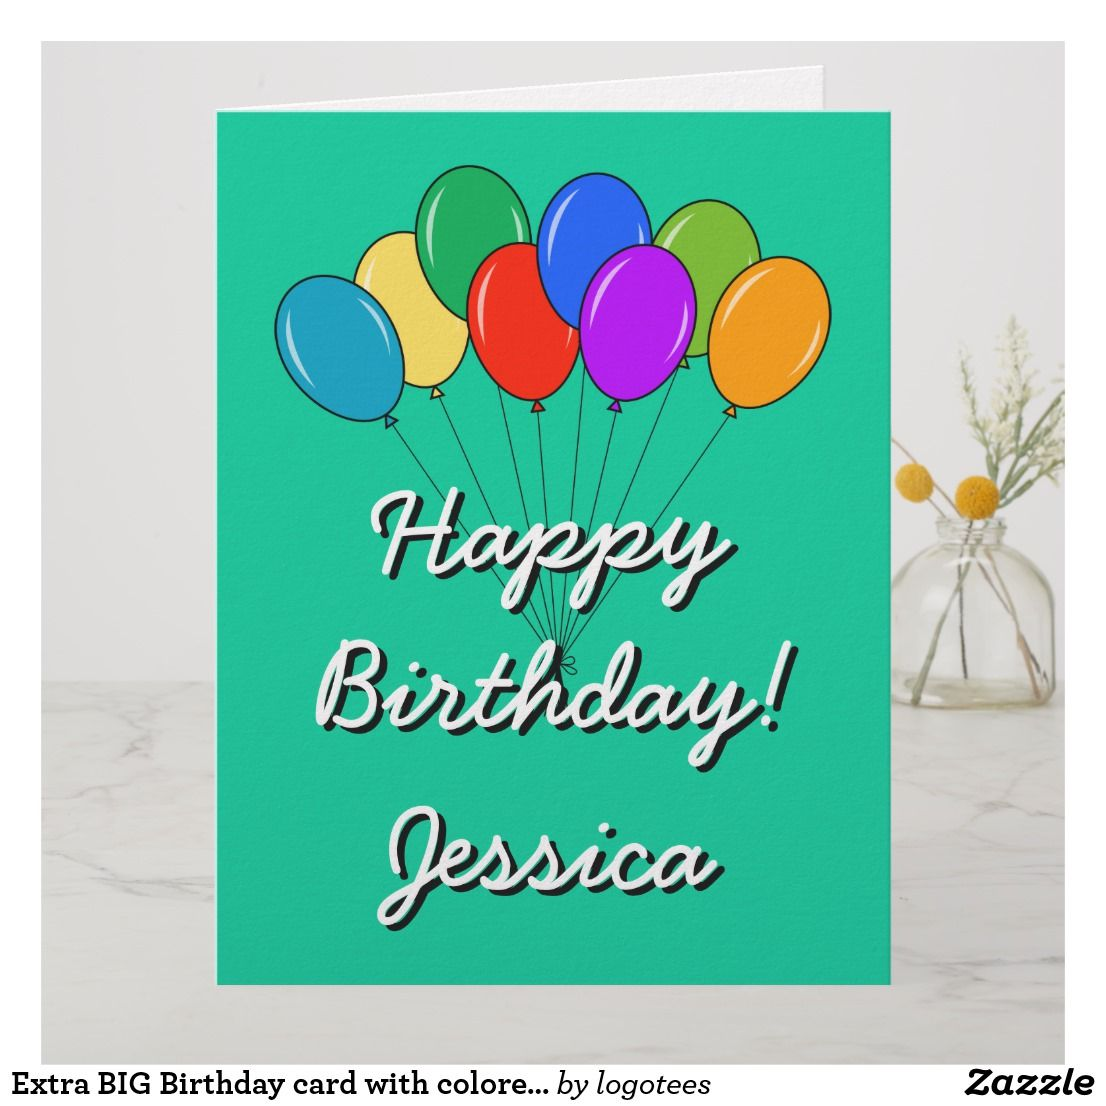 Extra Big Birthday Card With Colored Balloons Zazzle Com Birthday Cards Big Birthday Cards Custom Greeting Cards